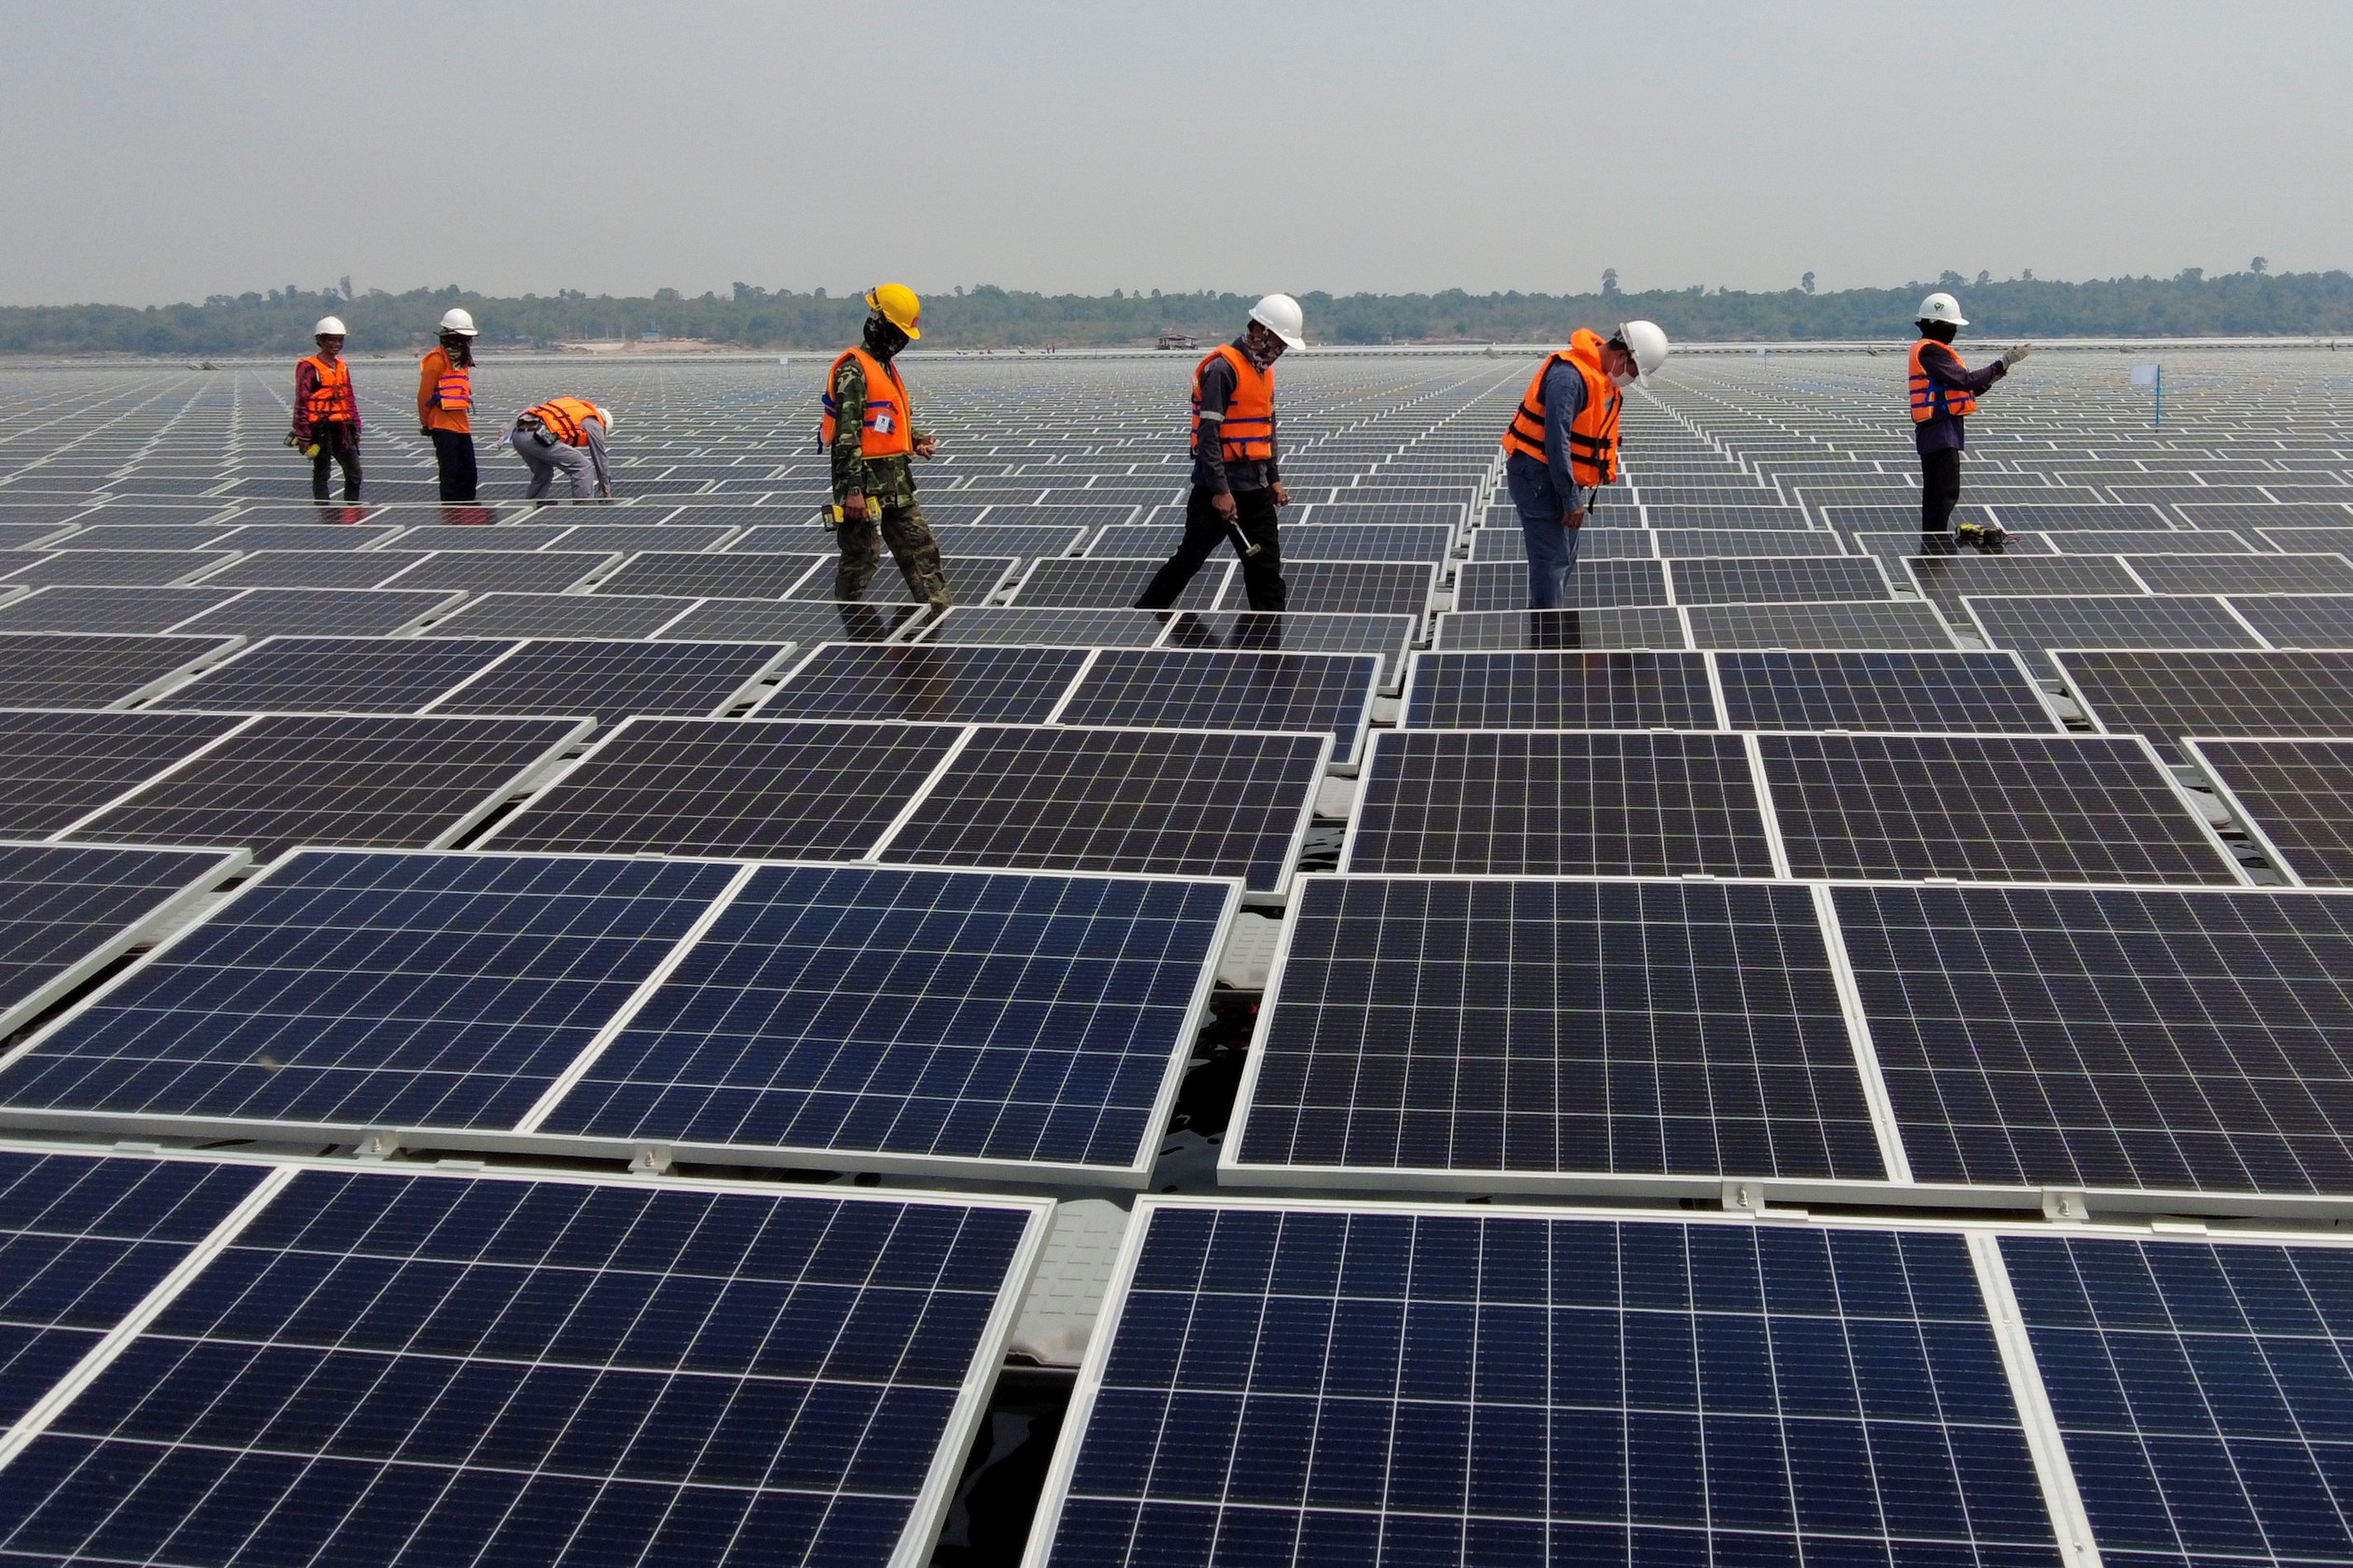 Workers walk between solar cell panels over the water surface of Sirindhorn Dam in Ubon Ratchathani, Thailand April 8, 2021. Picture taken April 8, 2021 with a drone. REUTERS/Prapan Chankaew